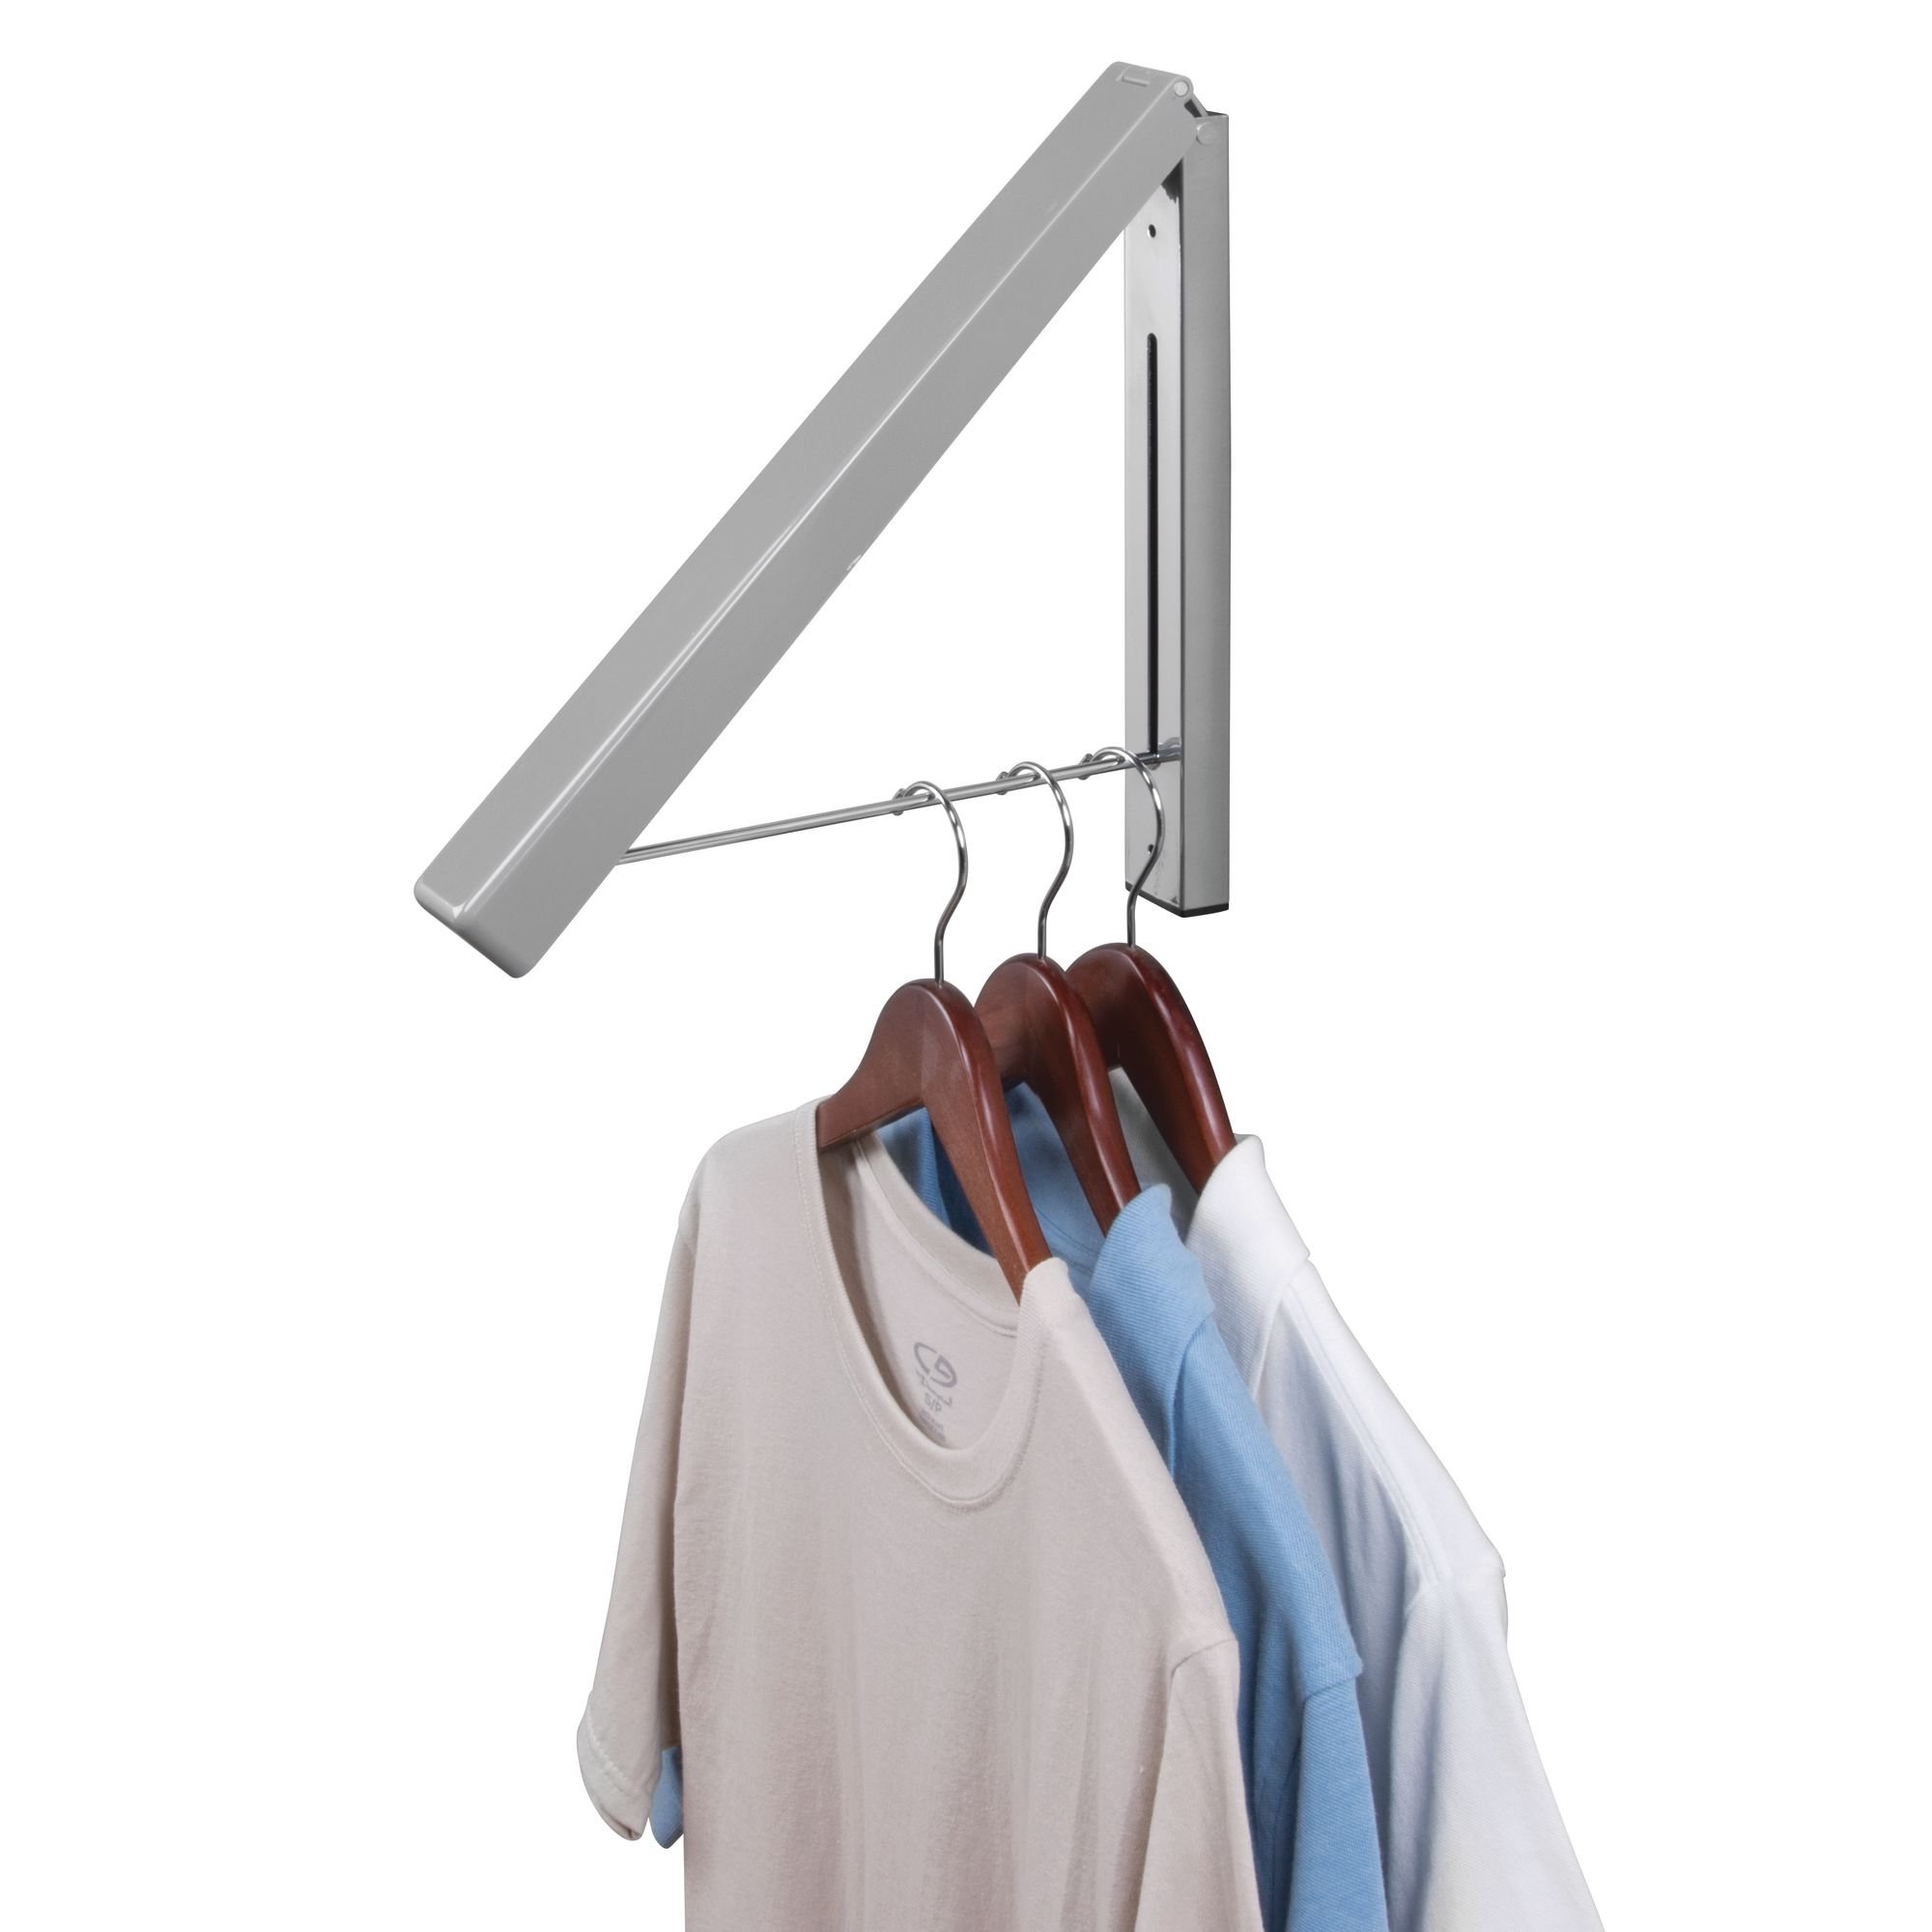 Laundry Room Wall Mount Clothes Hanger For Dry Cleaning